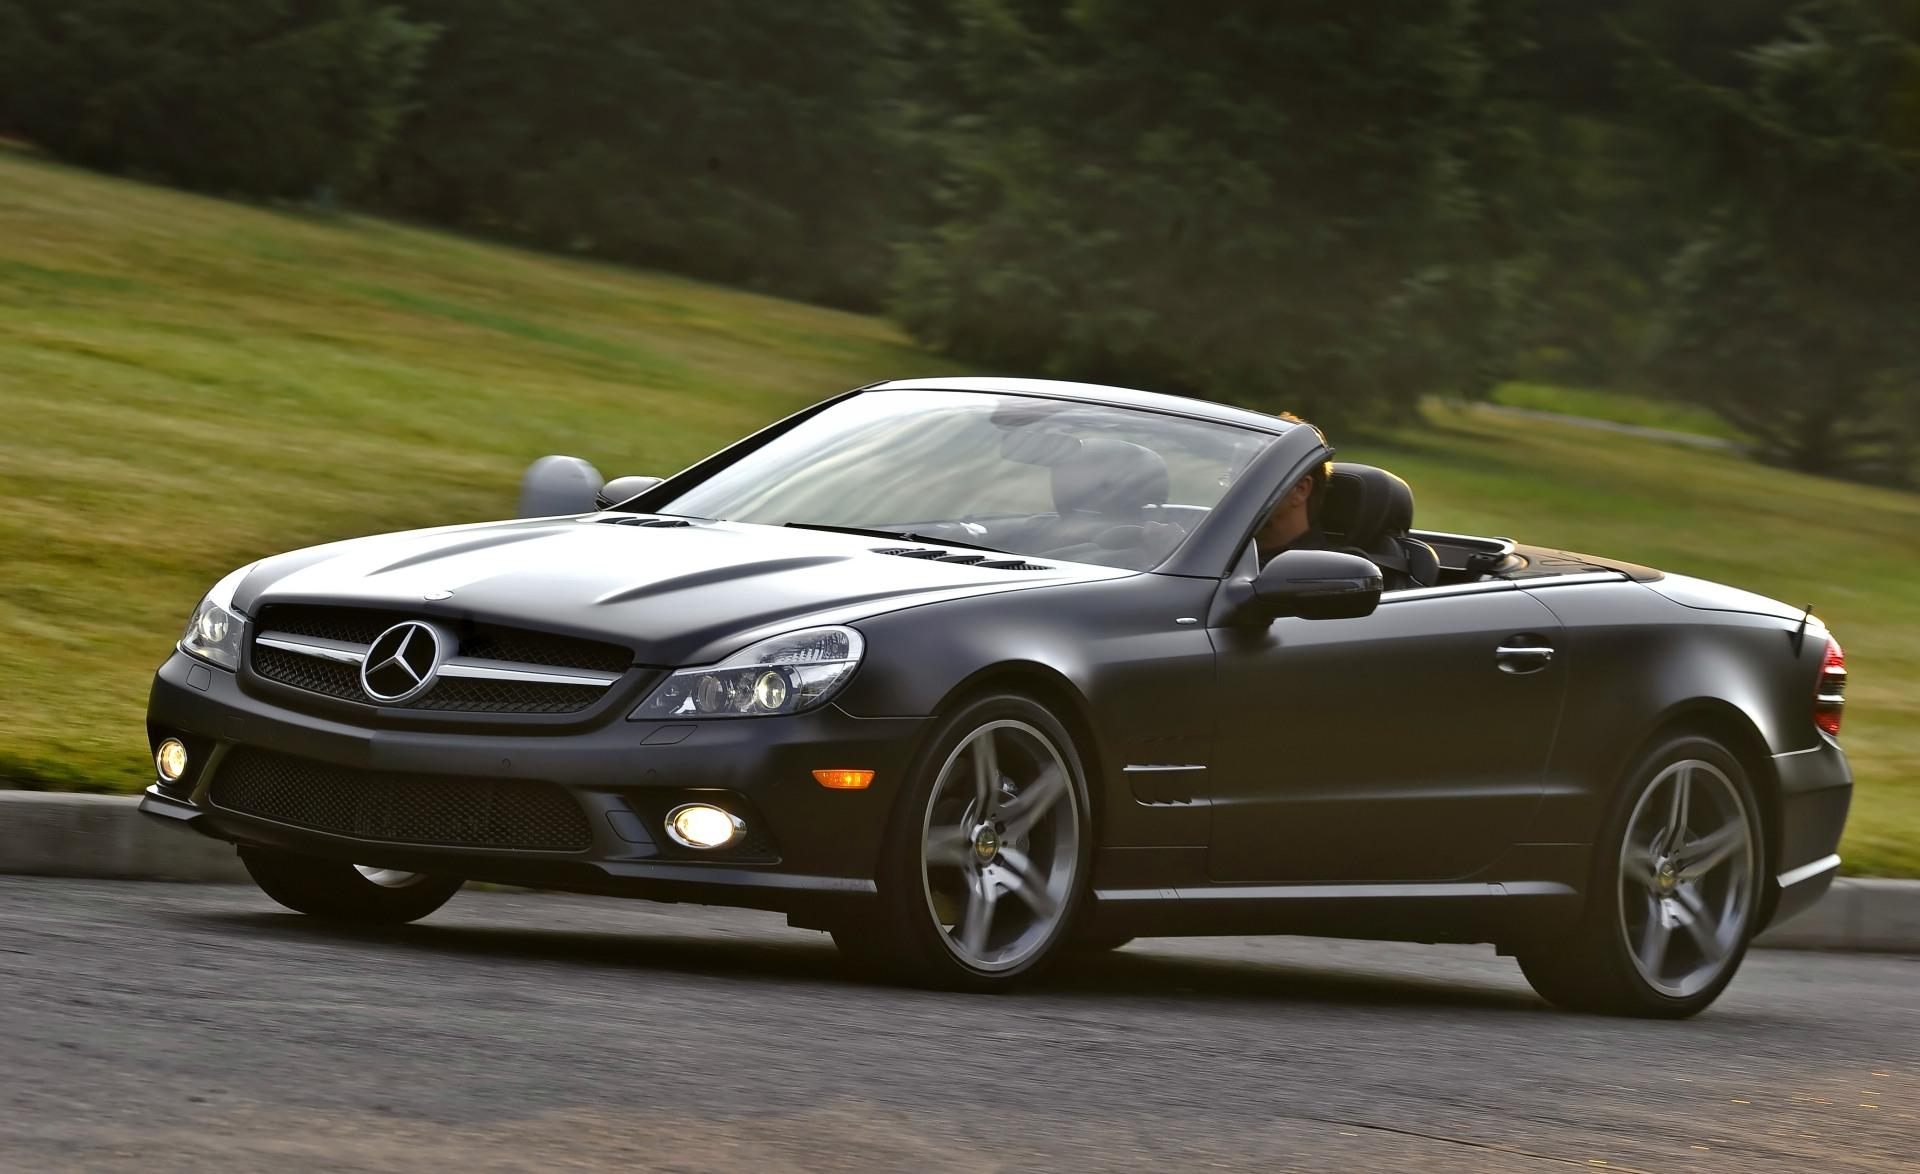 Auction results and data for 2011 mercedes benz sl class for Mercedes benz sl class